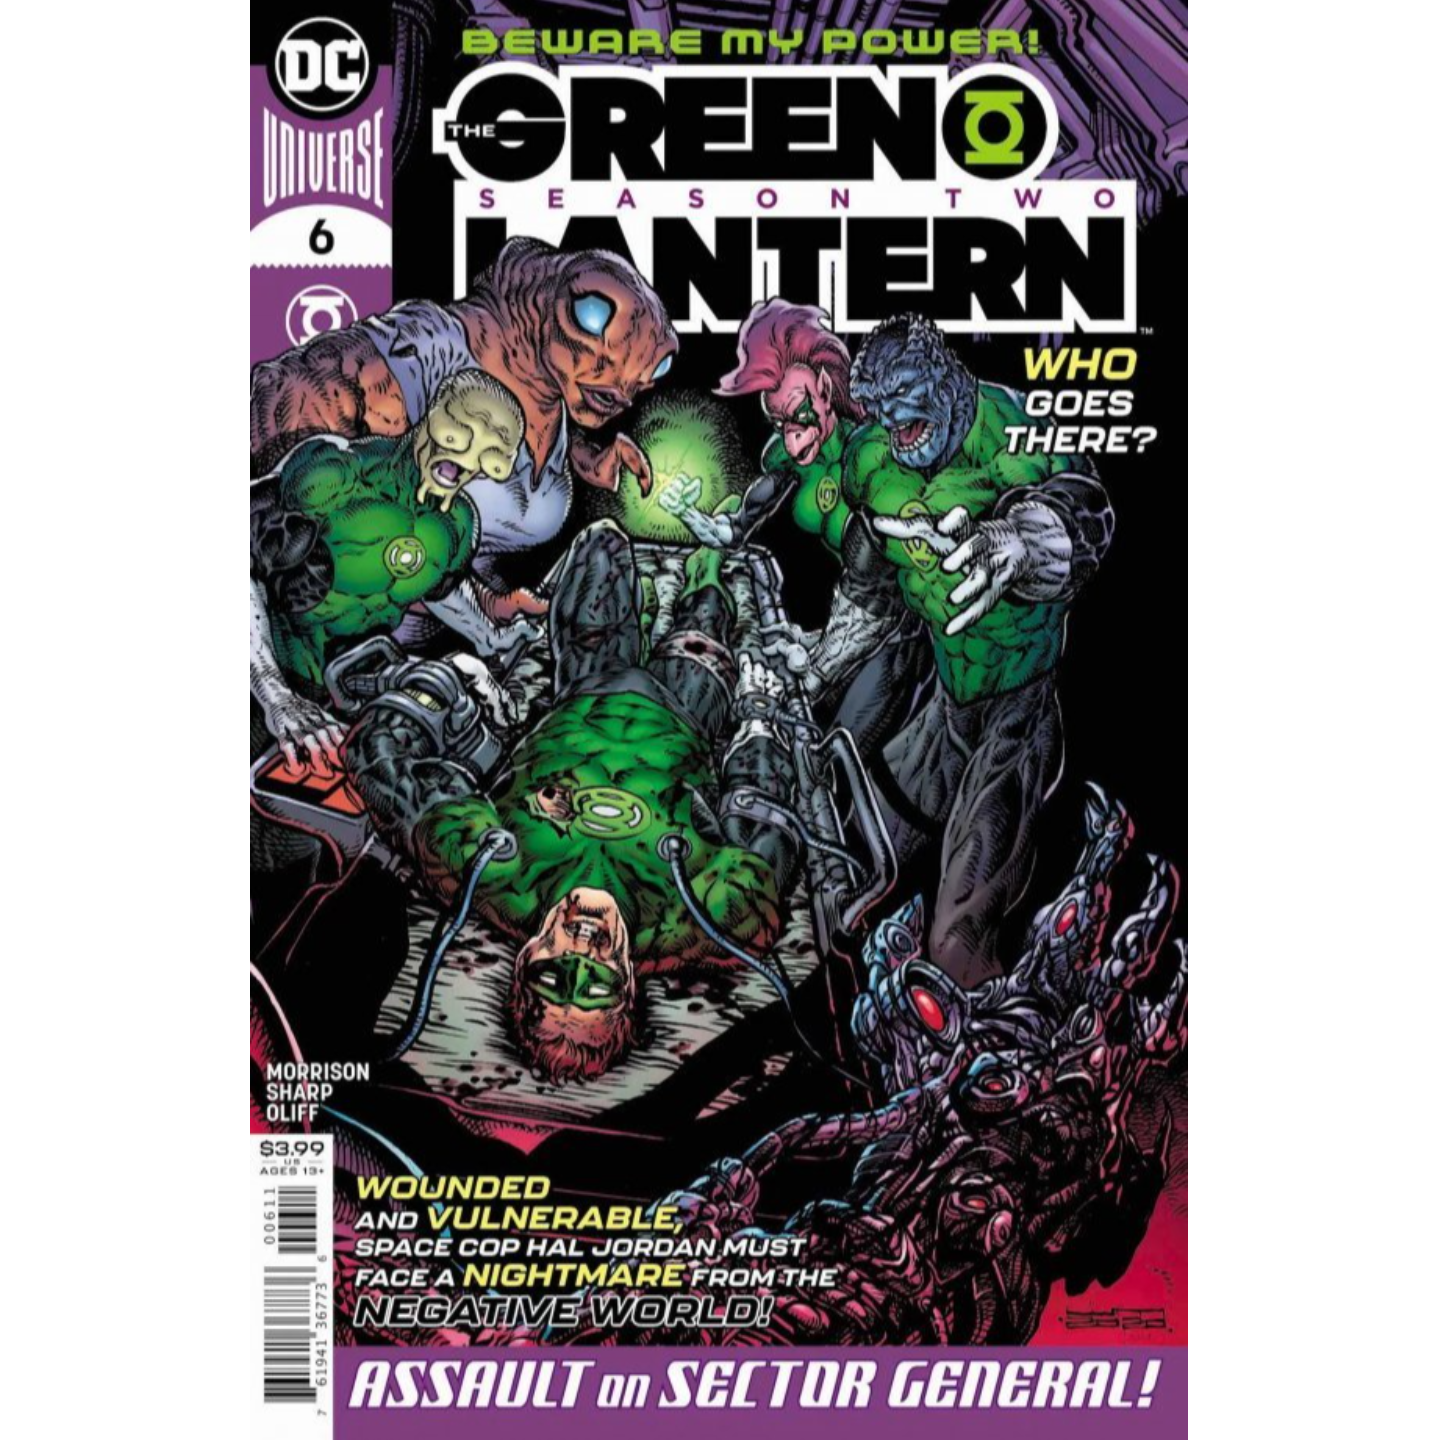 GREEN LANTERN SEASON 2 #6 (OF 12) CVR A LIAM SHARP